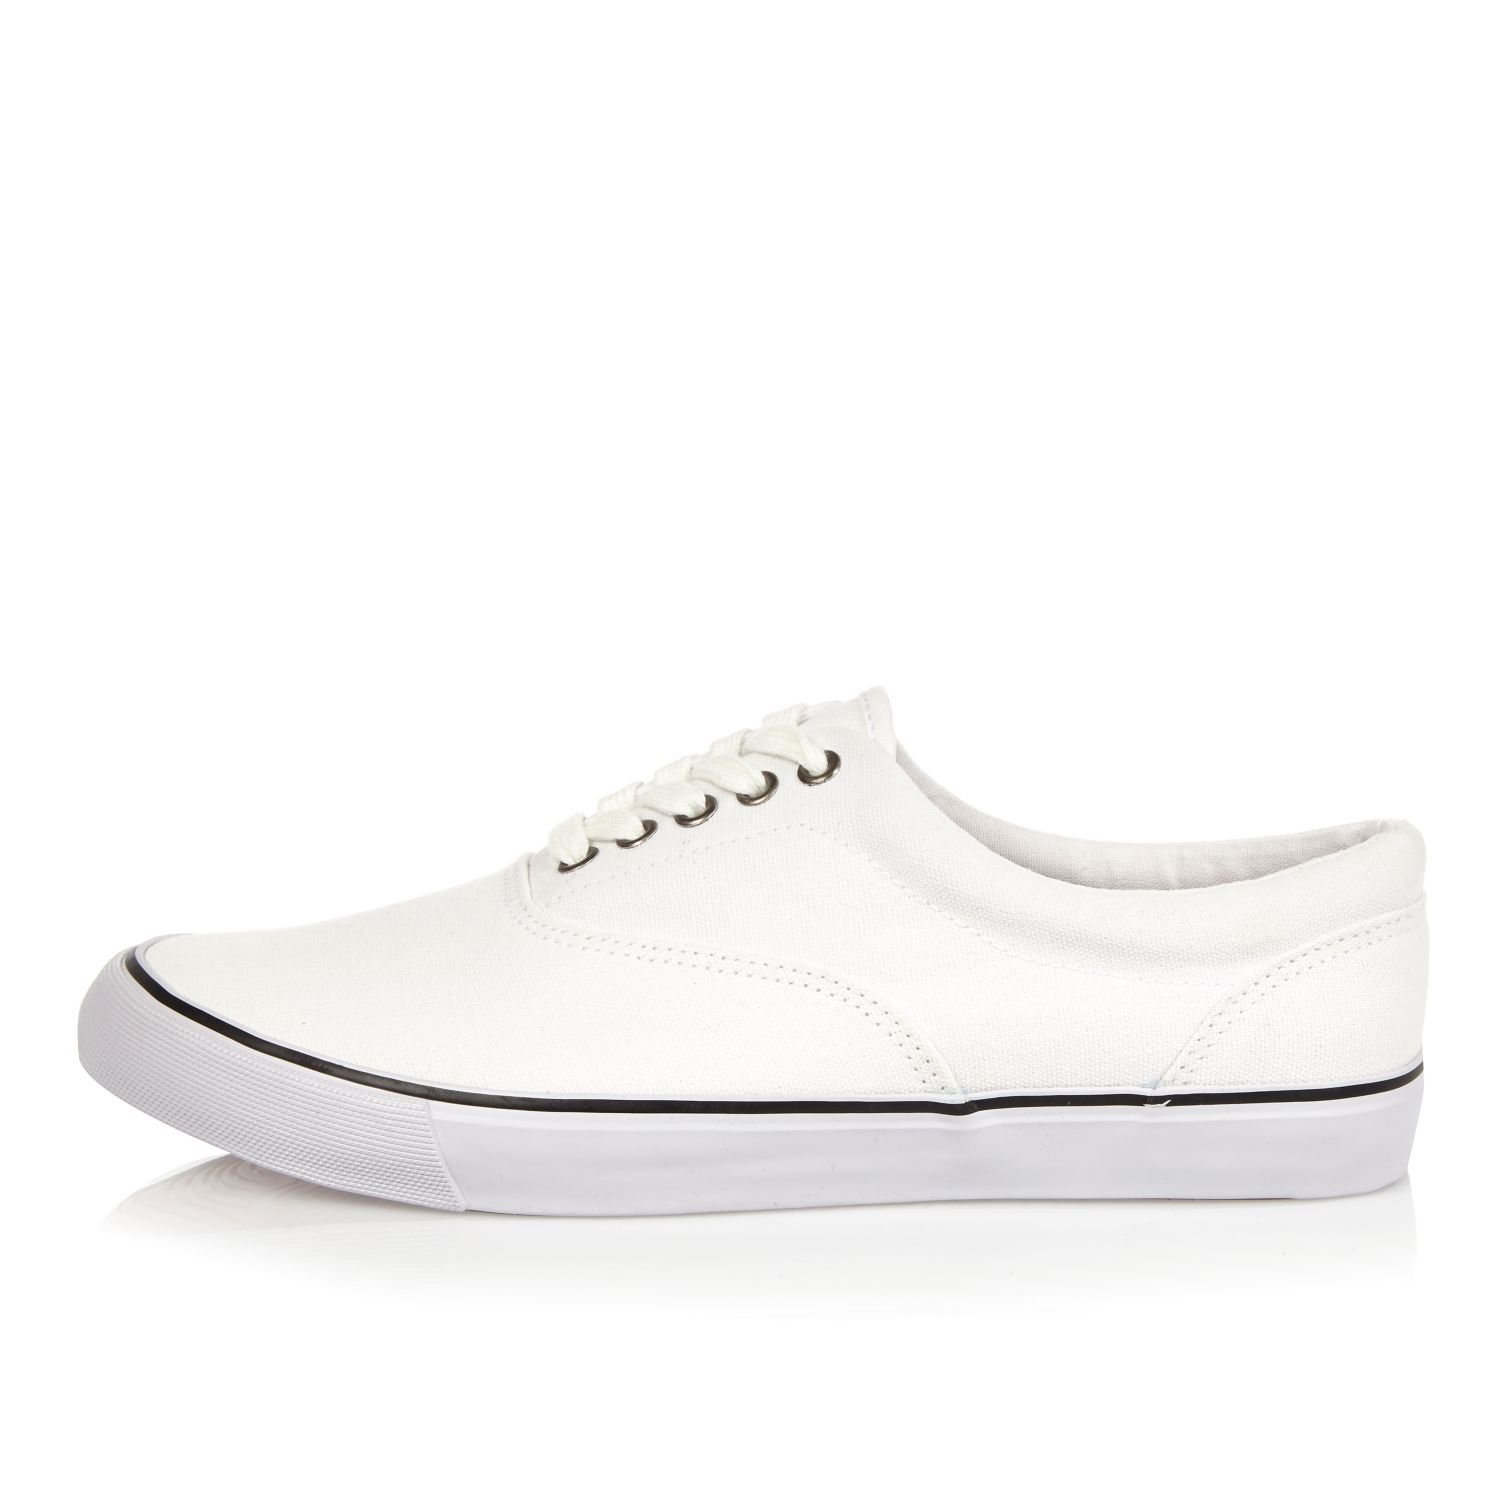 river island white canvas plimsolls in white for lyst